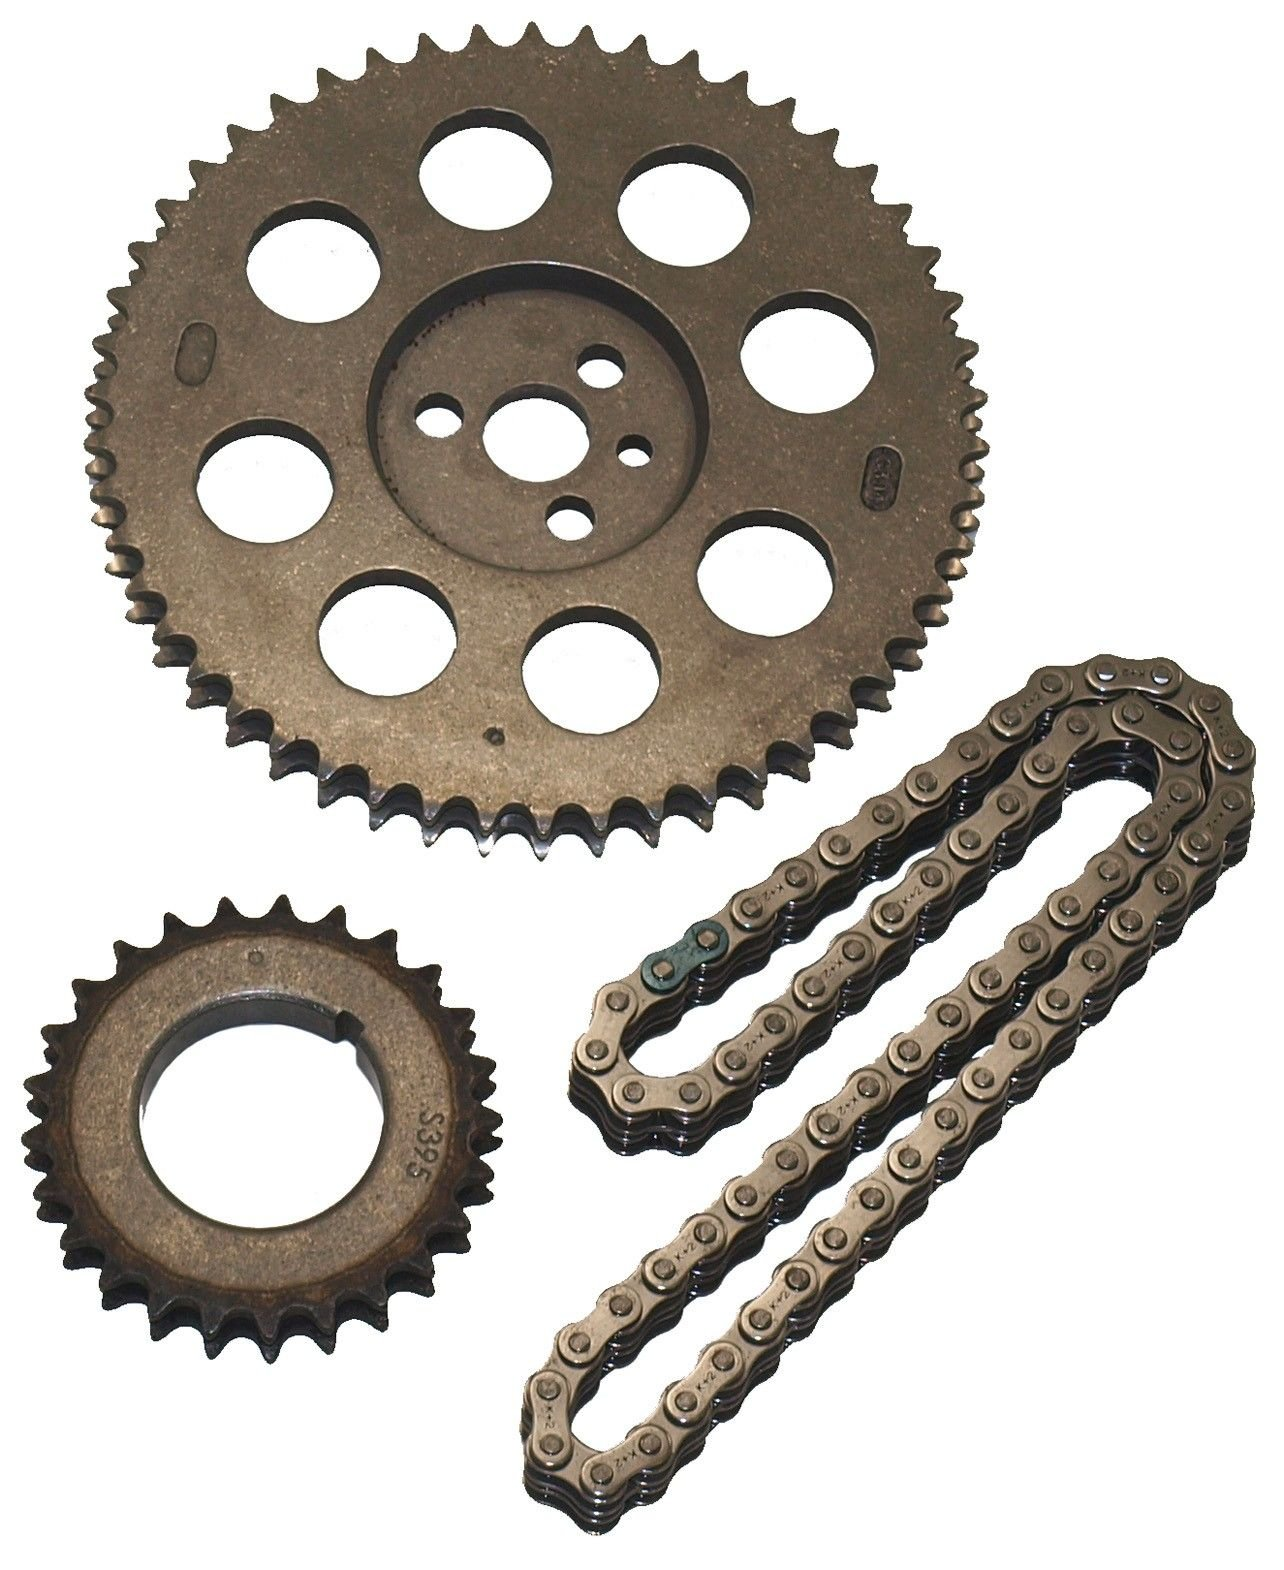 Engine Timing Set Replacement (ACDelco, Cloyes, ContiTech